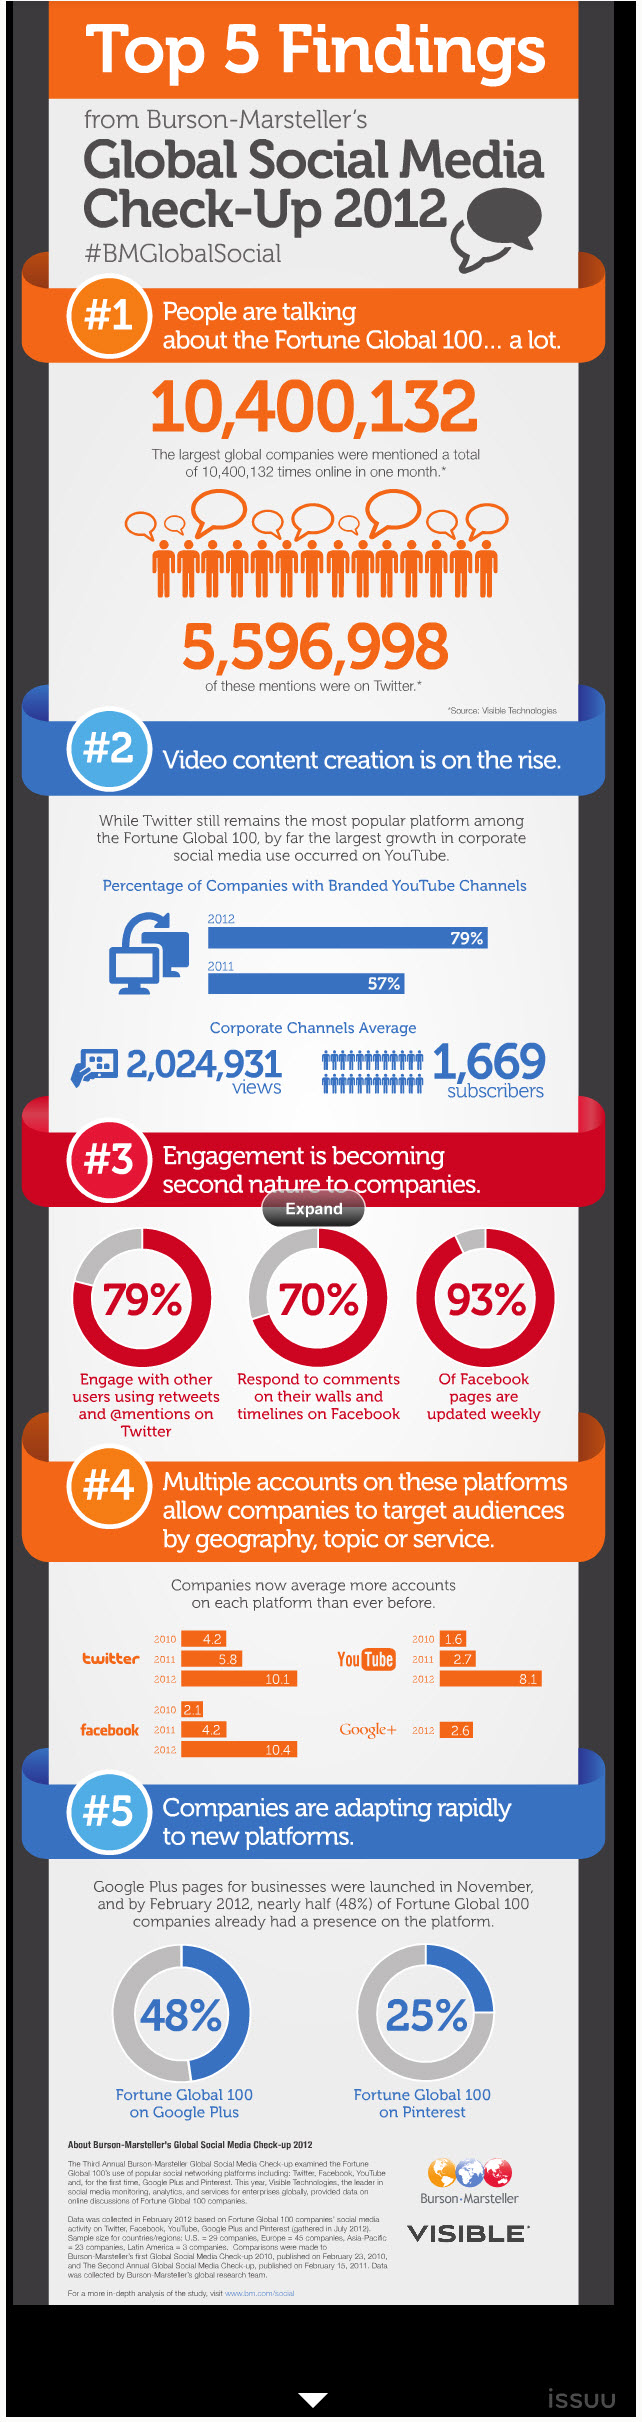 5 Insights into Global Social Media in 2012 (Infographic) image 5 Insights into Global Social Media in 2012